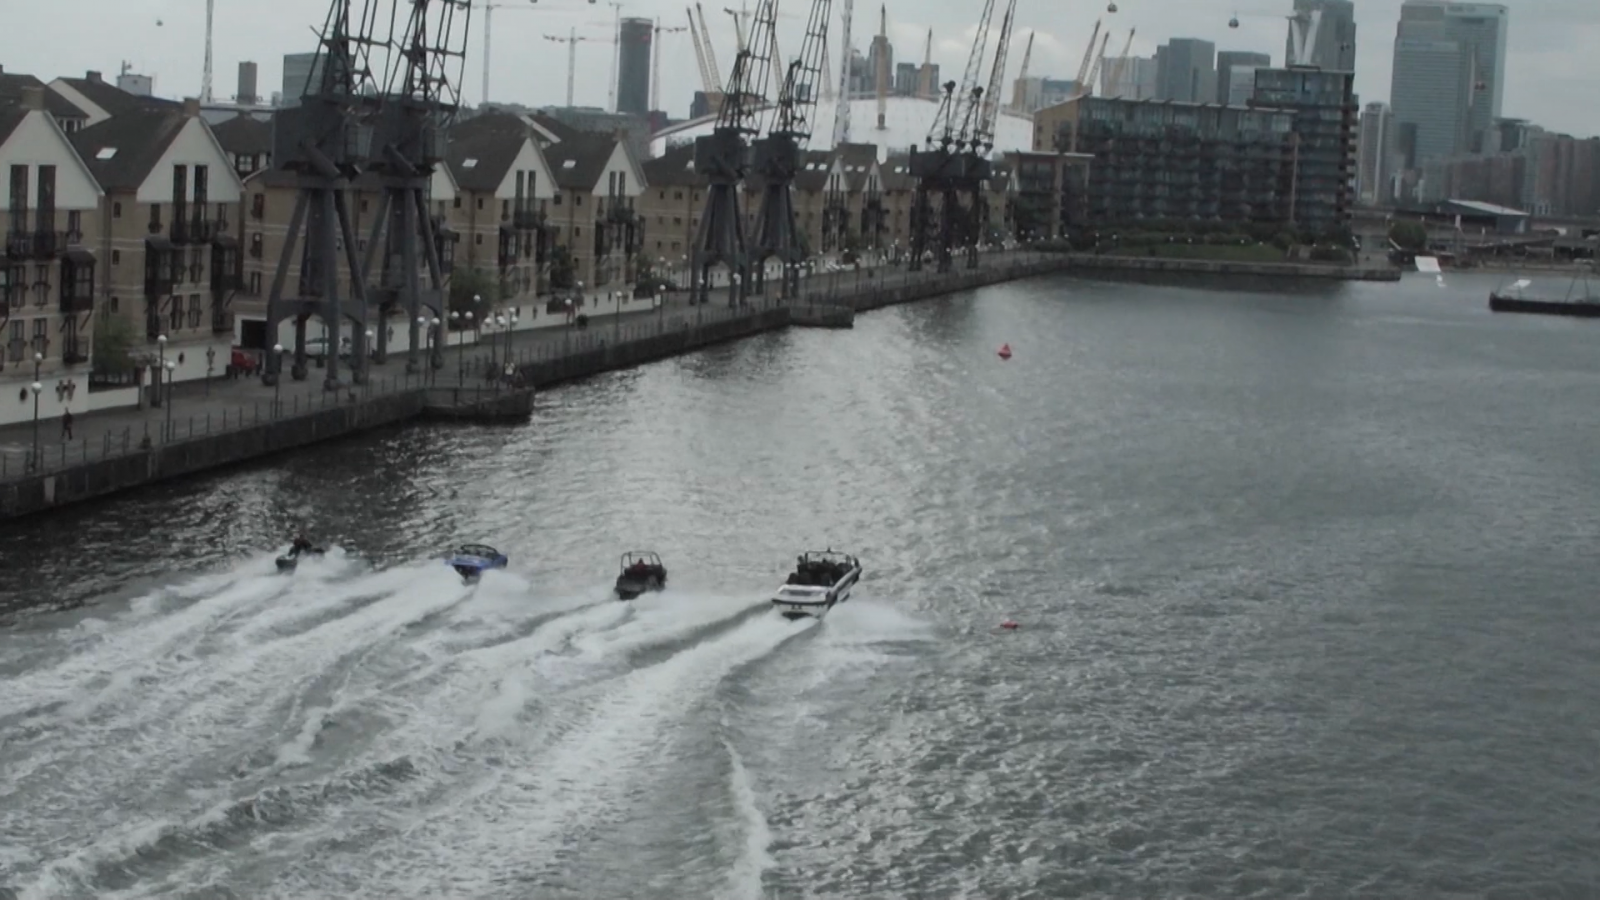 World's first high-speed amphibious taxi service could revolutionise London's public transport